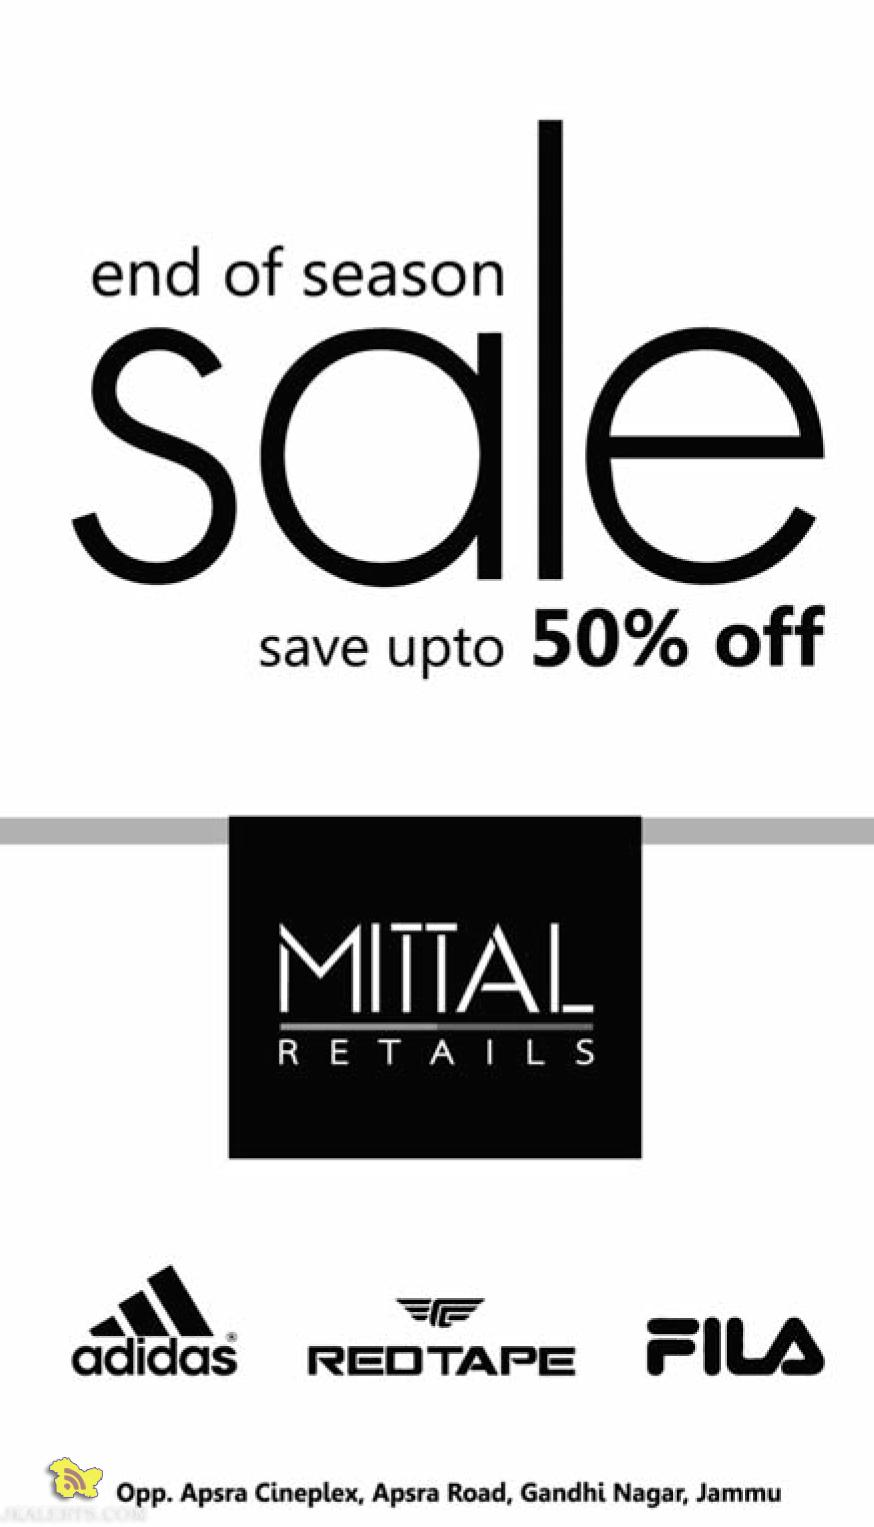 End of season sale in Mittal Retail save Upto 50% On big Brands Like Fila Adidas and Redtape